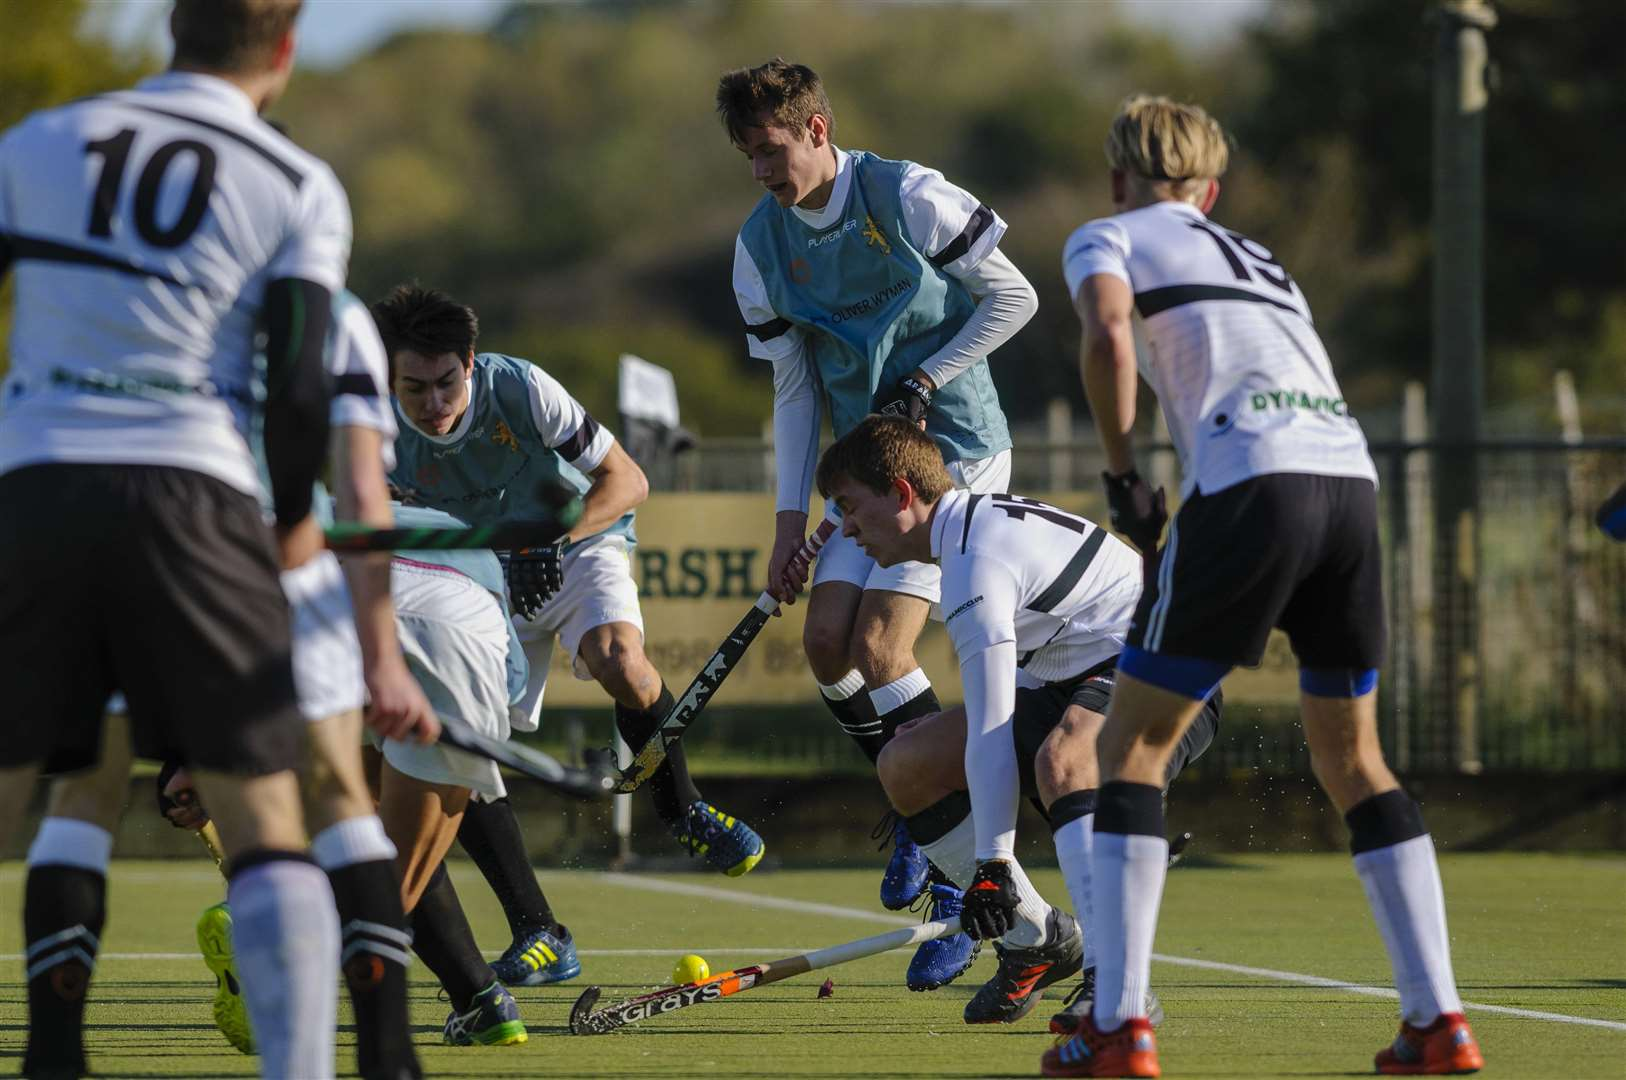 Weybread, Suffolk, UK, 27 October 2018..Hockey action from Harleston Men's 1 v Cambridge University...Picture: Mark Bullimore Photography. (5053019)